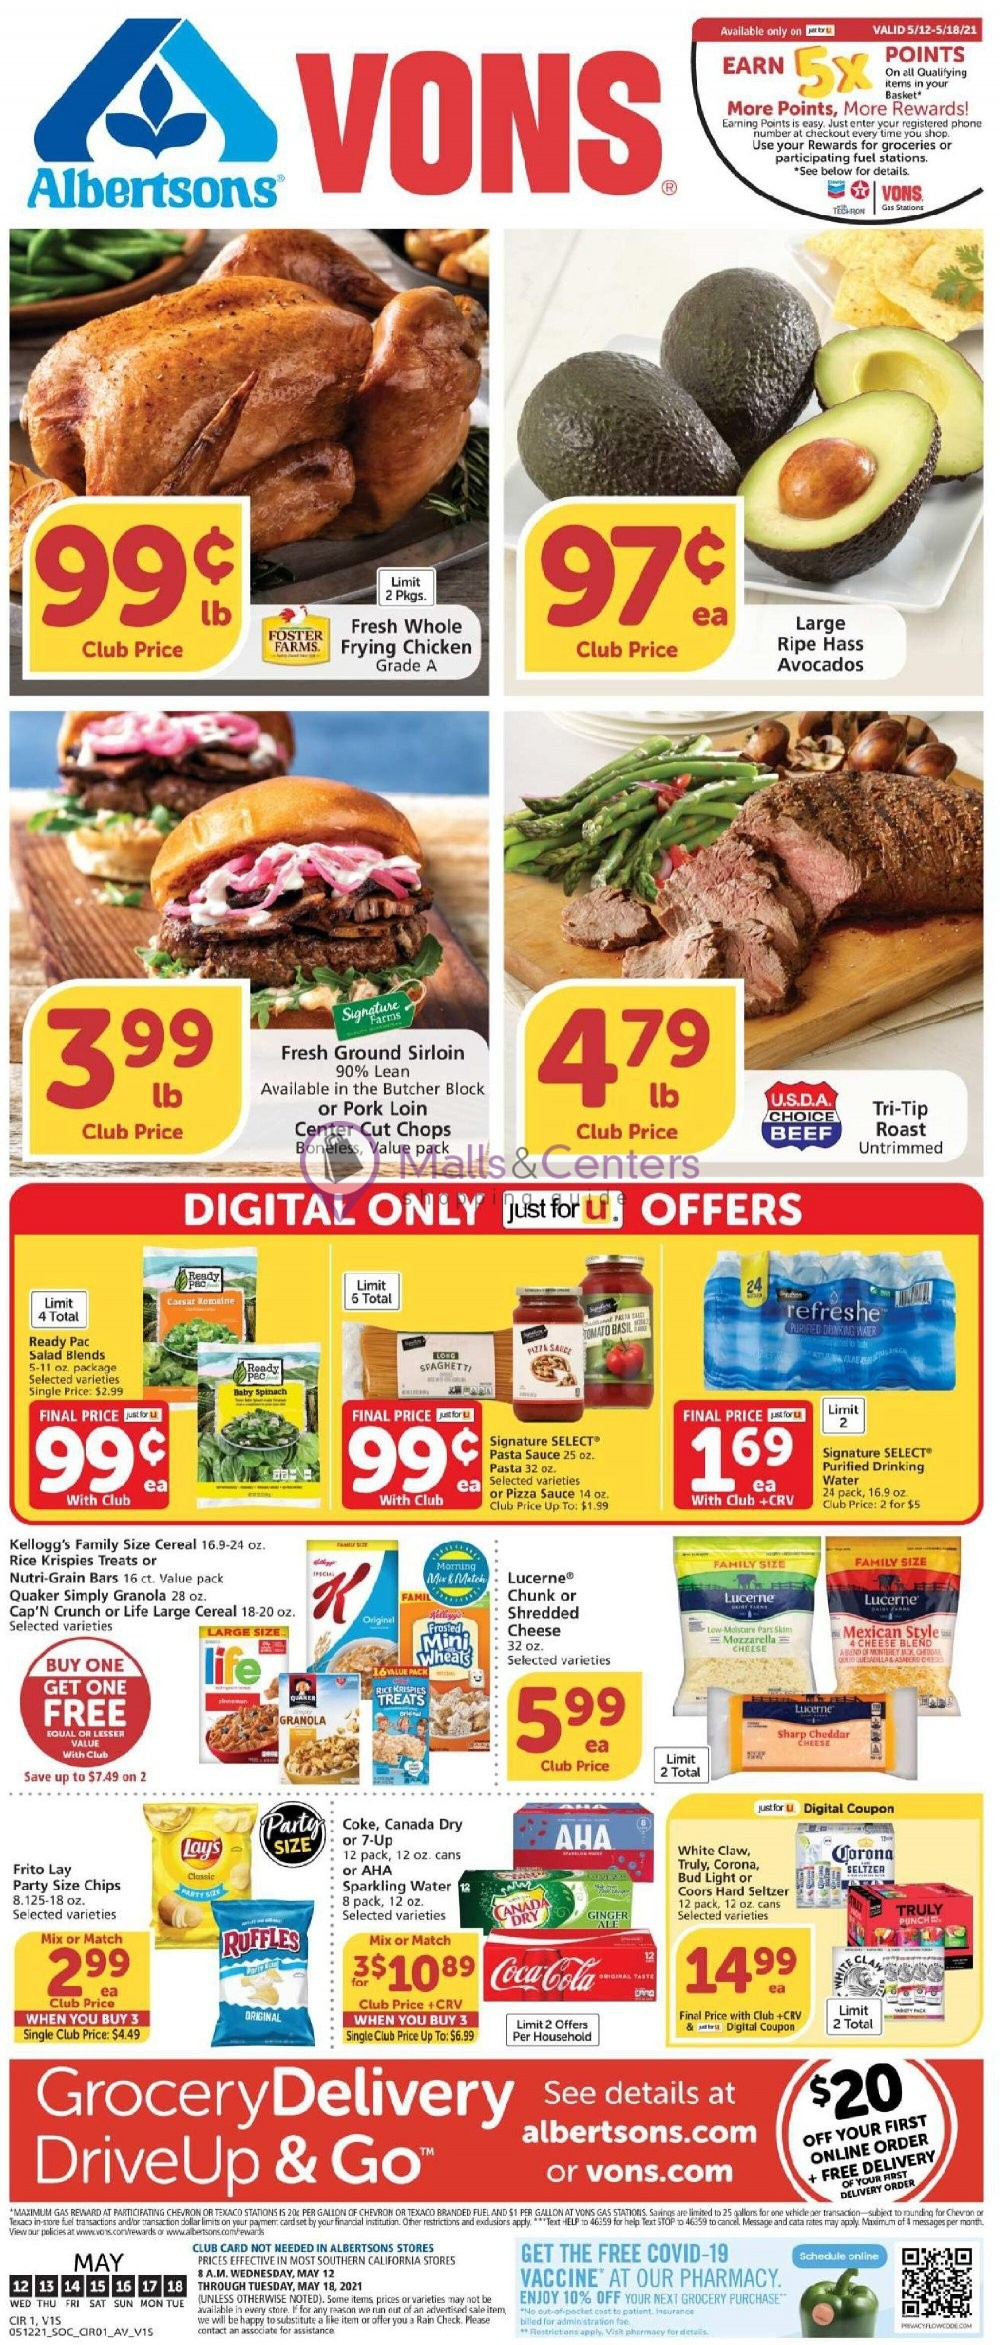 weekly ads Vons - page 1 - mallscenters.com